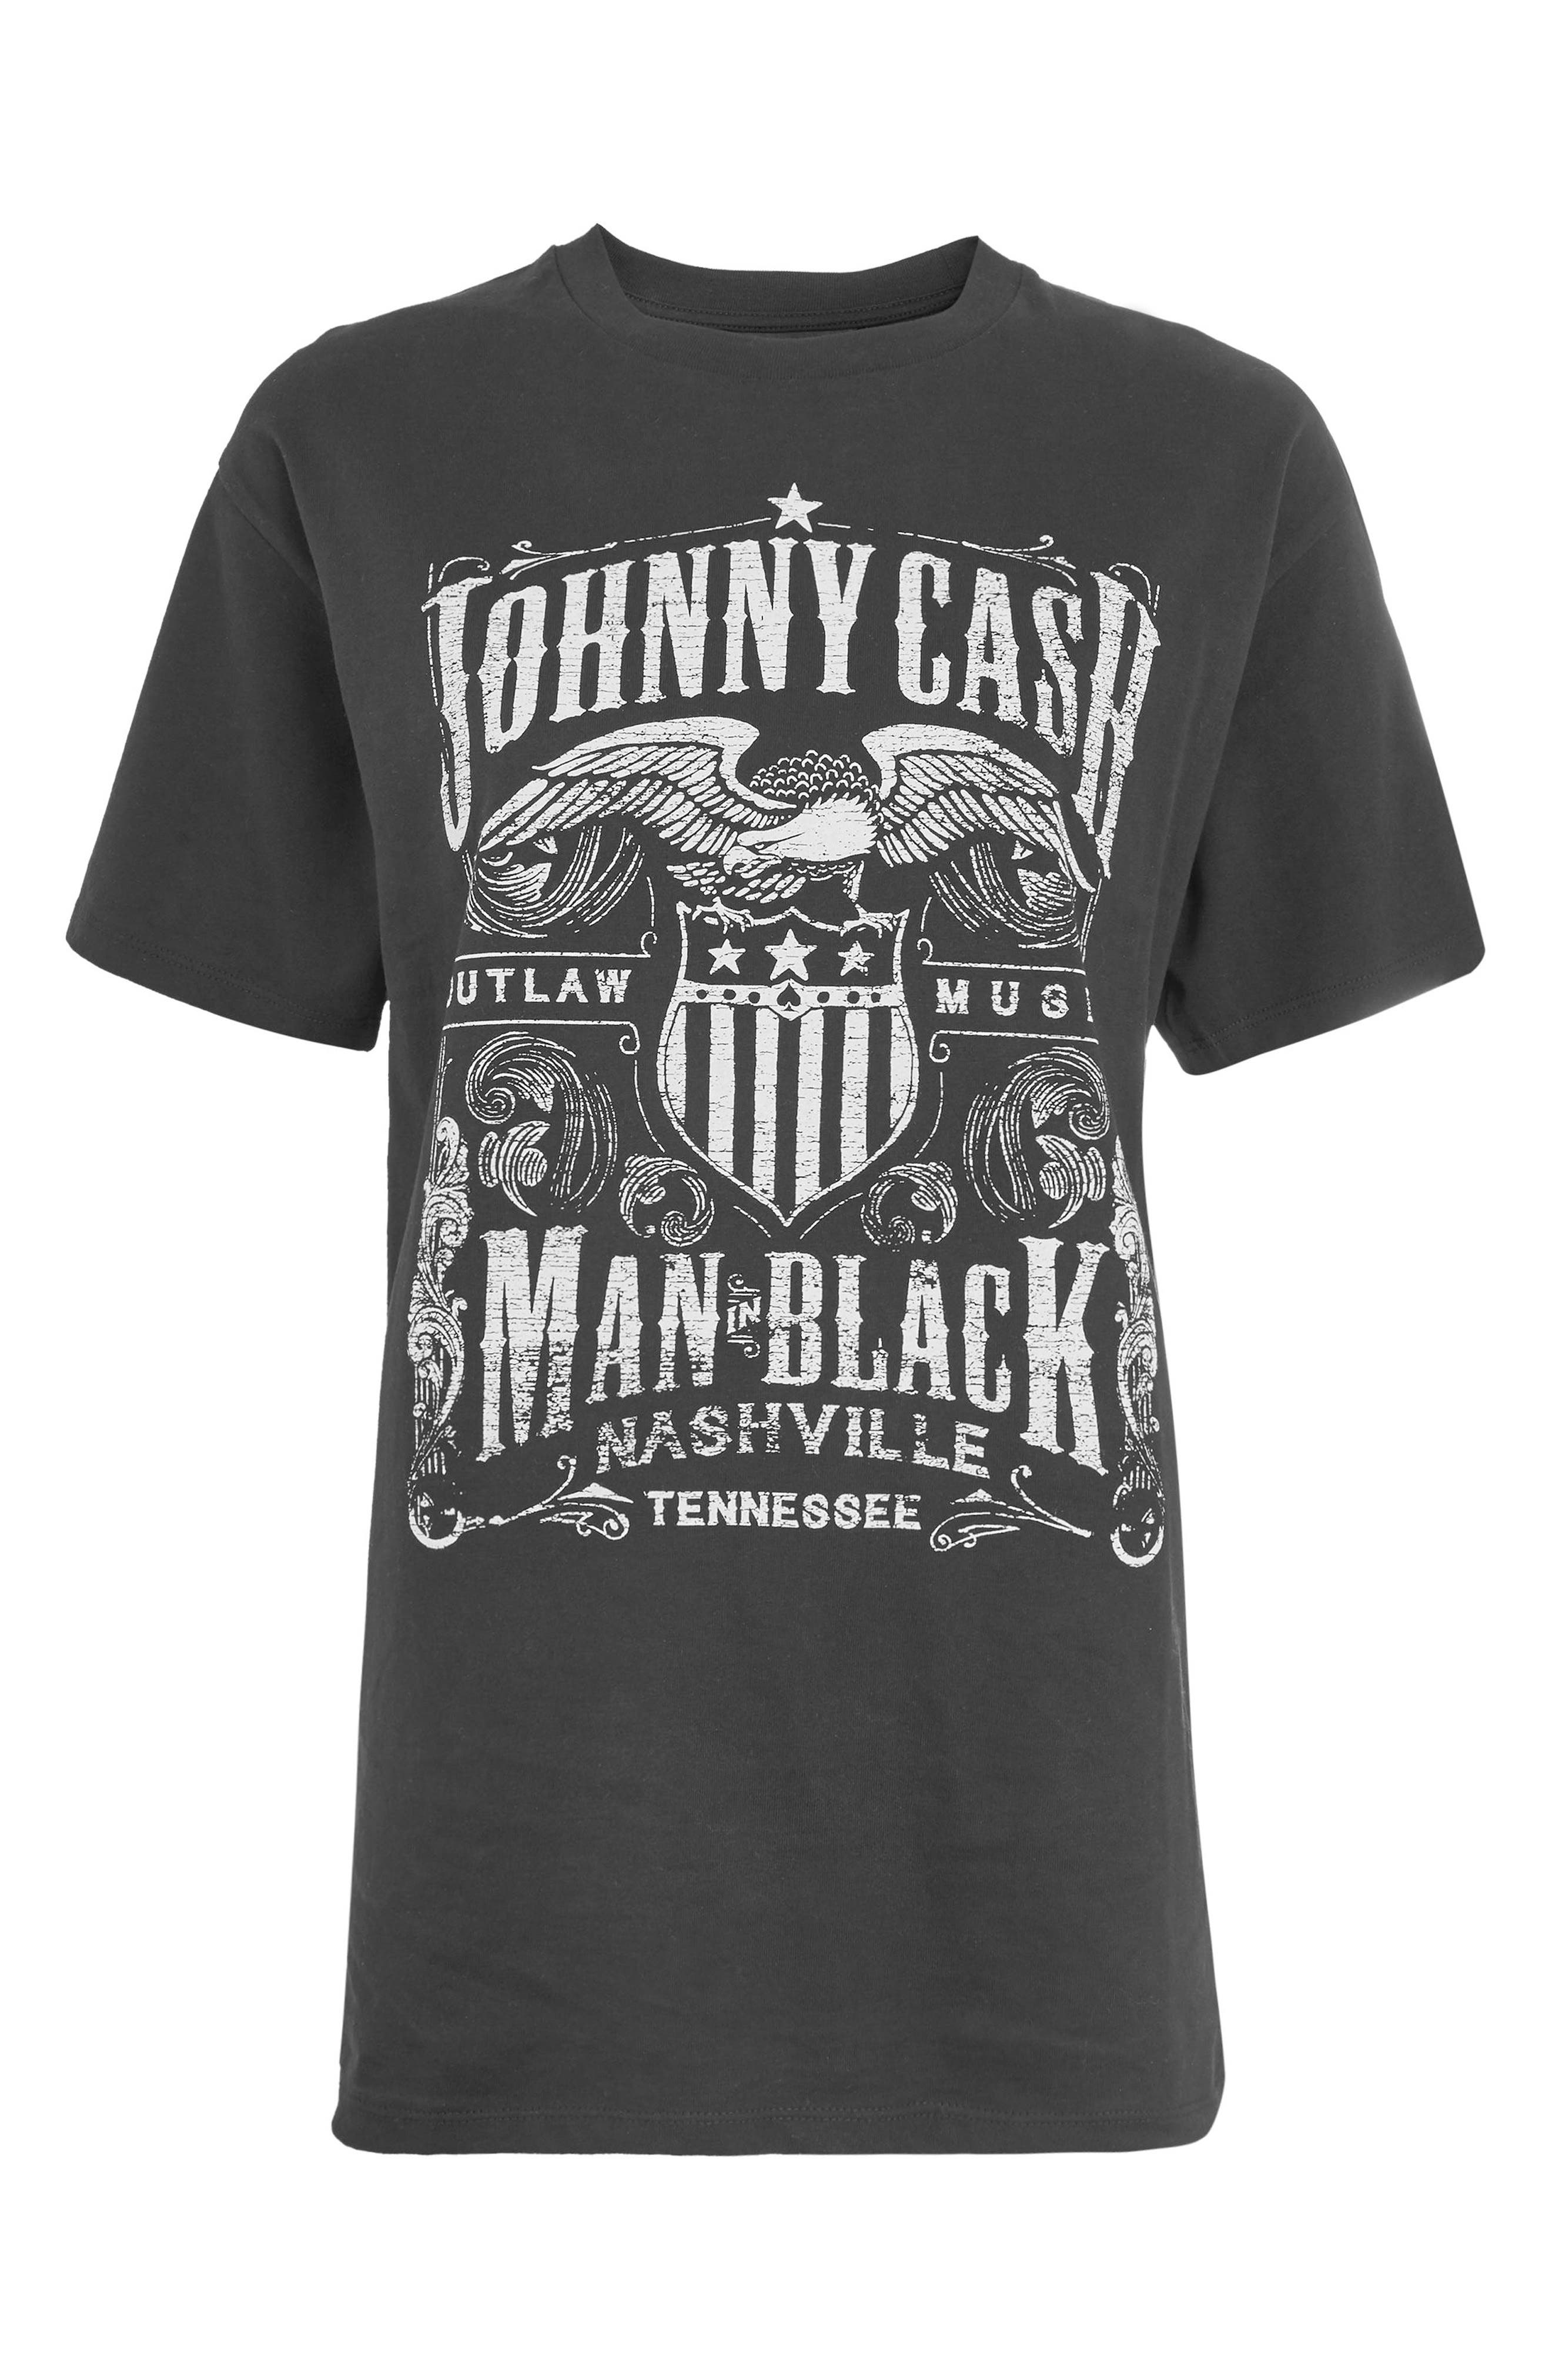 by And Finally Johnny Cash Fringe Tee,                             Alternate thumbnail 4, color,                             Black Multi